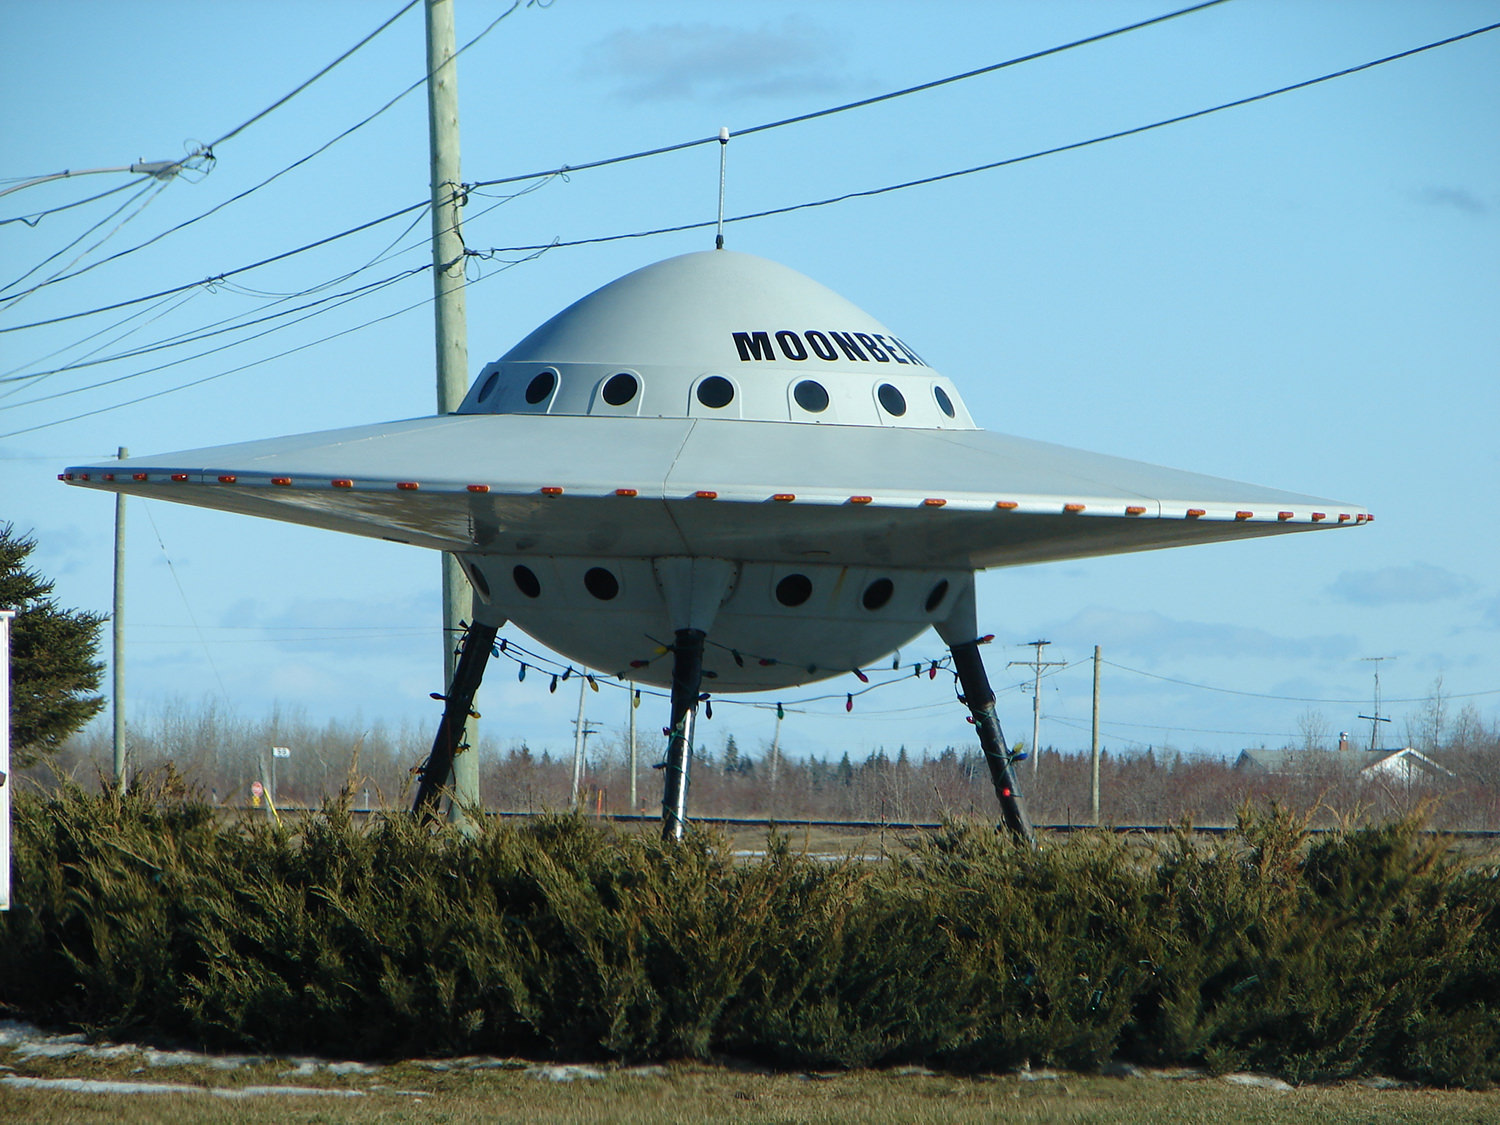 Moonbeam UFO, in Moonbeam, Ontario, Canada